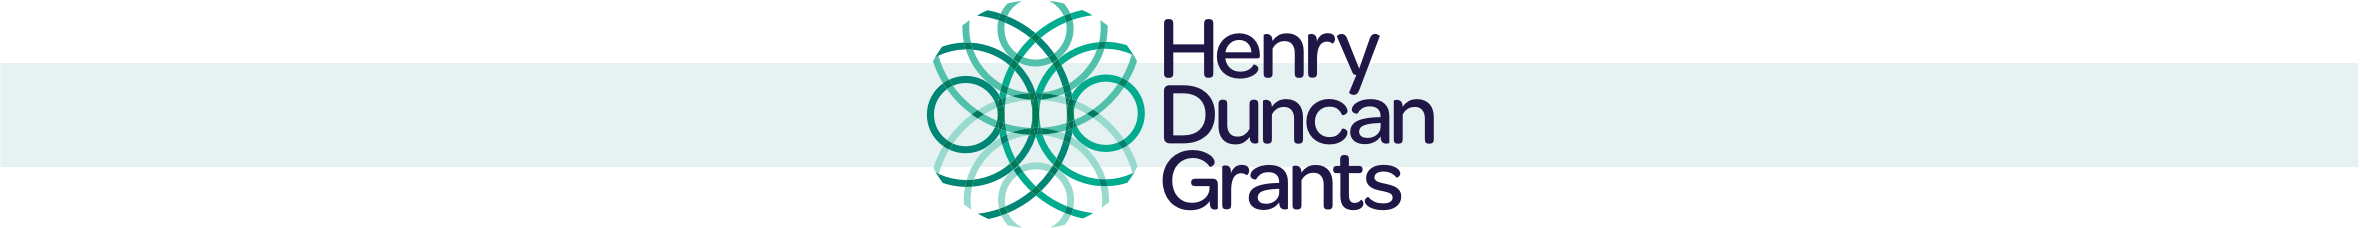 Henry Duncan Grants header logo